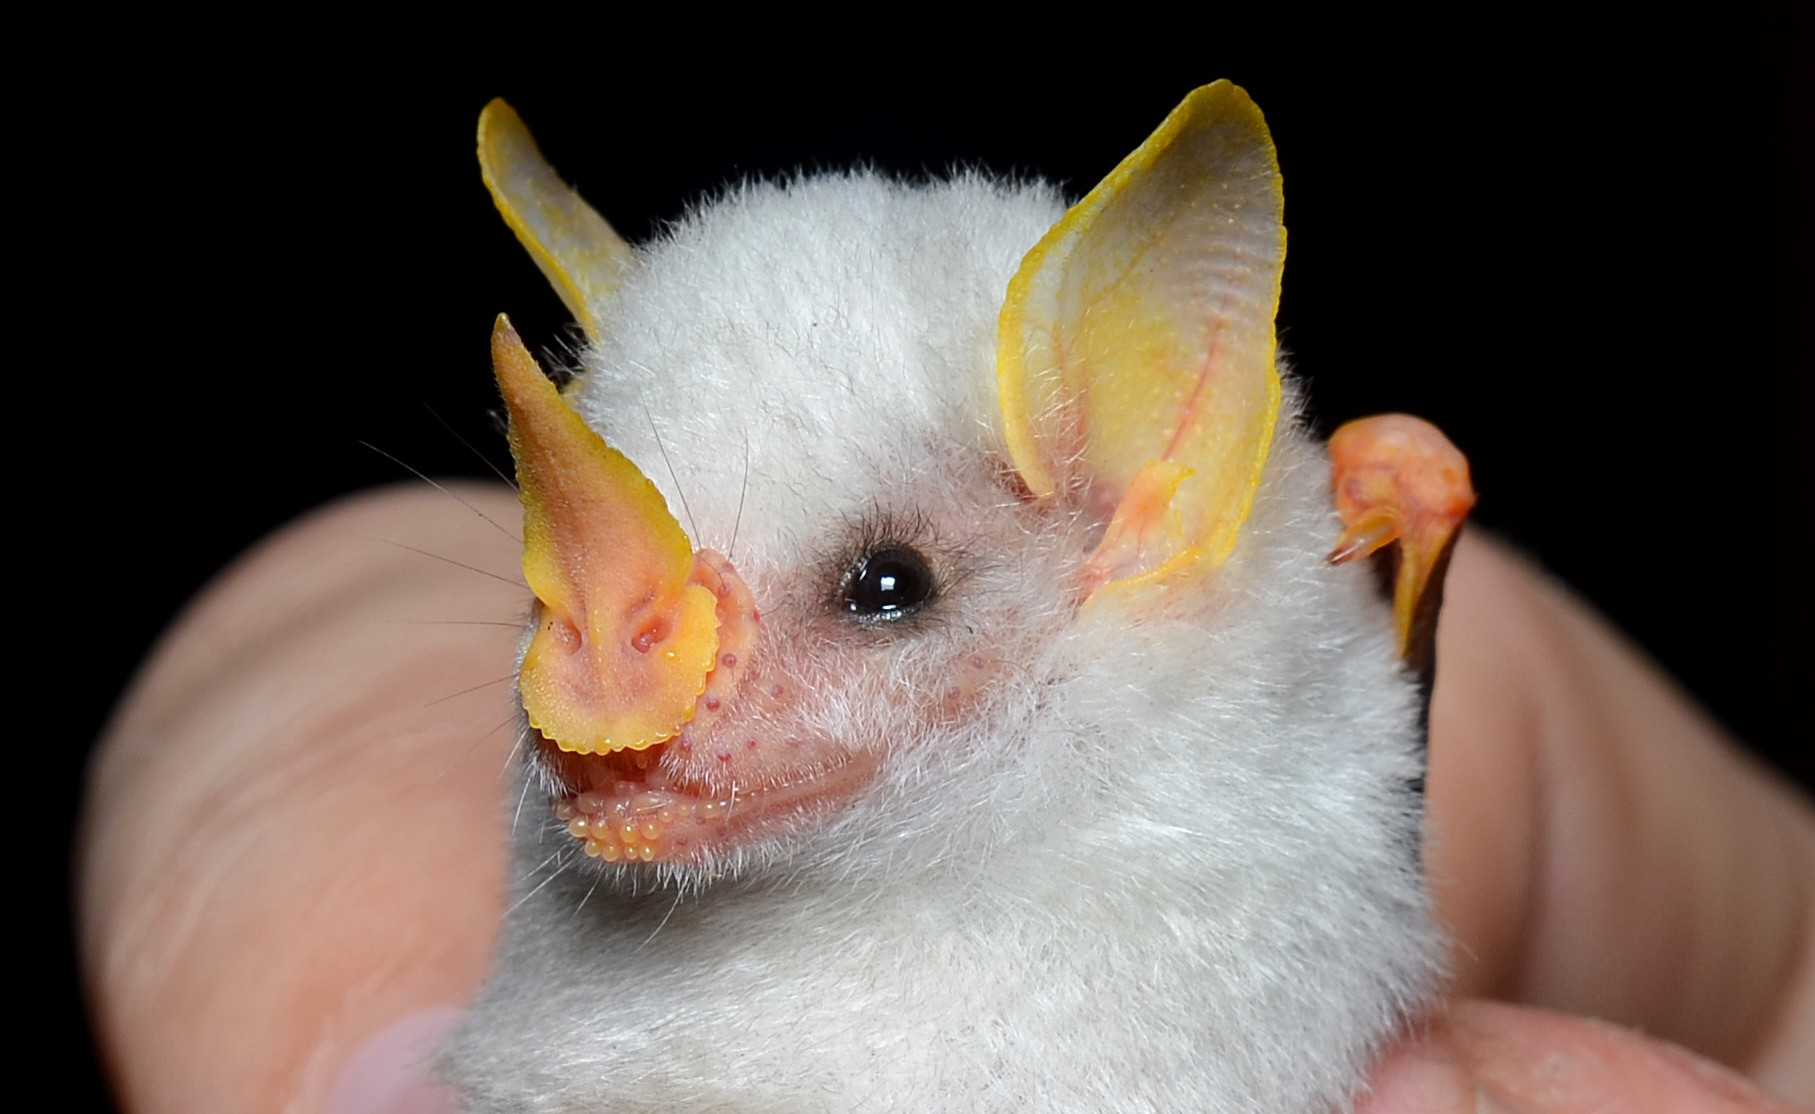 Ectophylla alba By Geoff Gallice from Gainesville, FL, USA (Honduran tent bat  Uploaded by Leyo) [CC-BY-2.0 (http://creativecommons.org/licenses/by/2.0)], via Wikimedia Commons